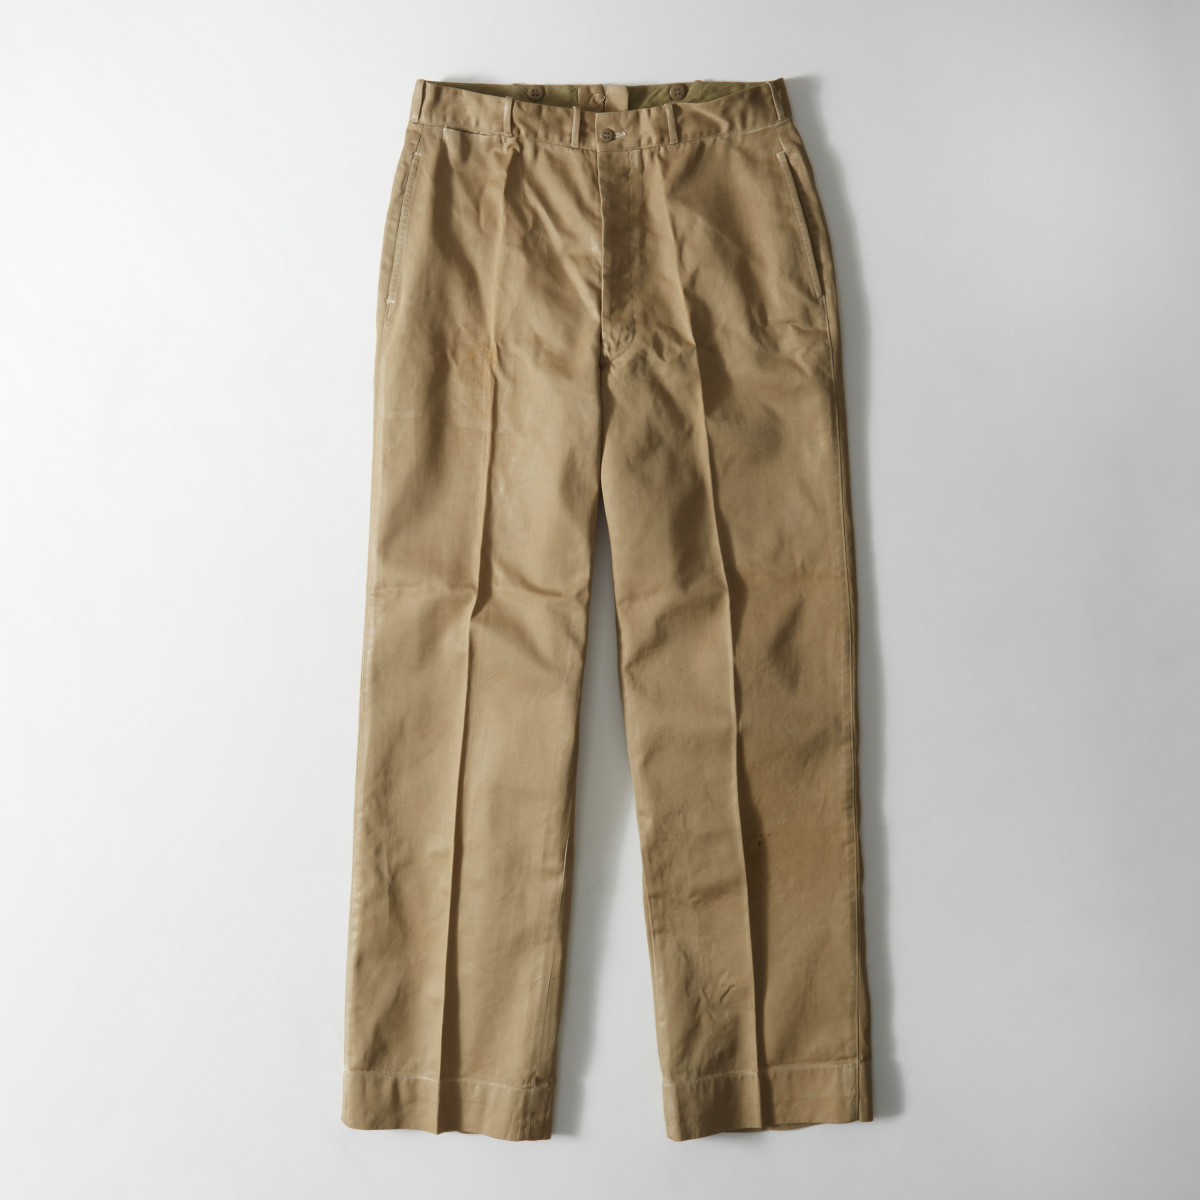 John F. Kennedy's original chino pants. Photo: Abercrombie & Fitch